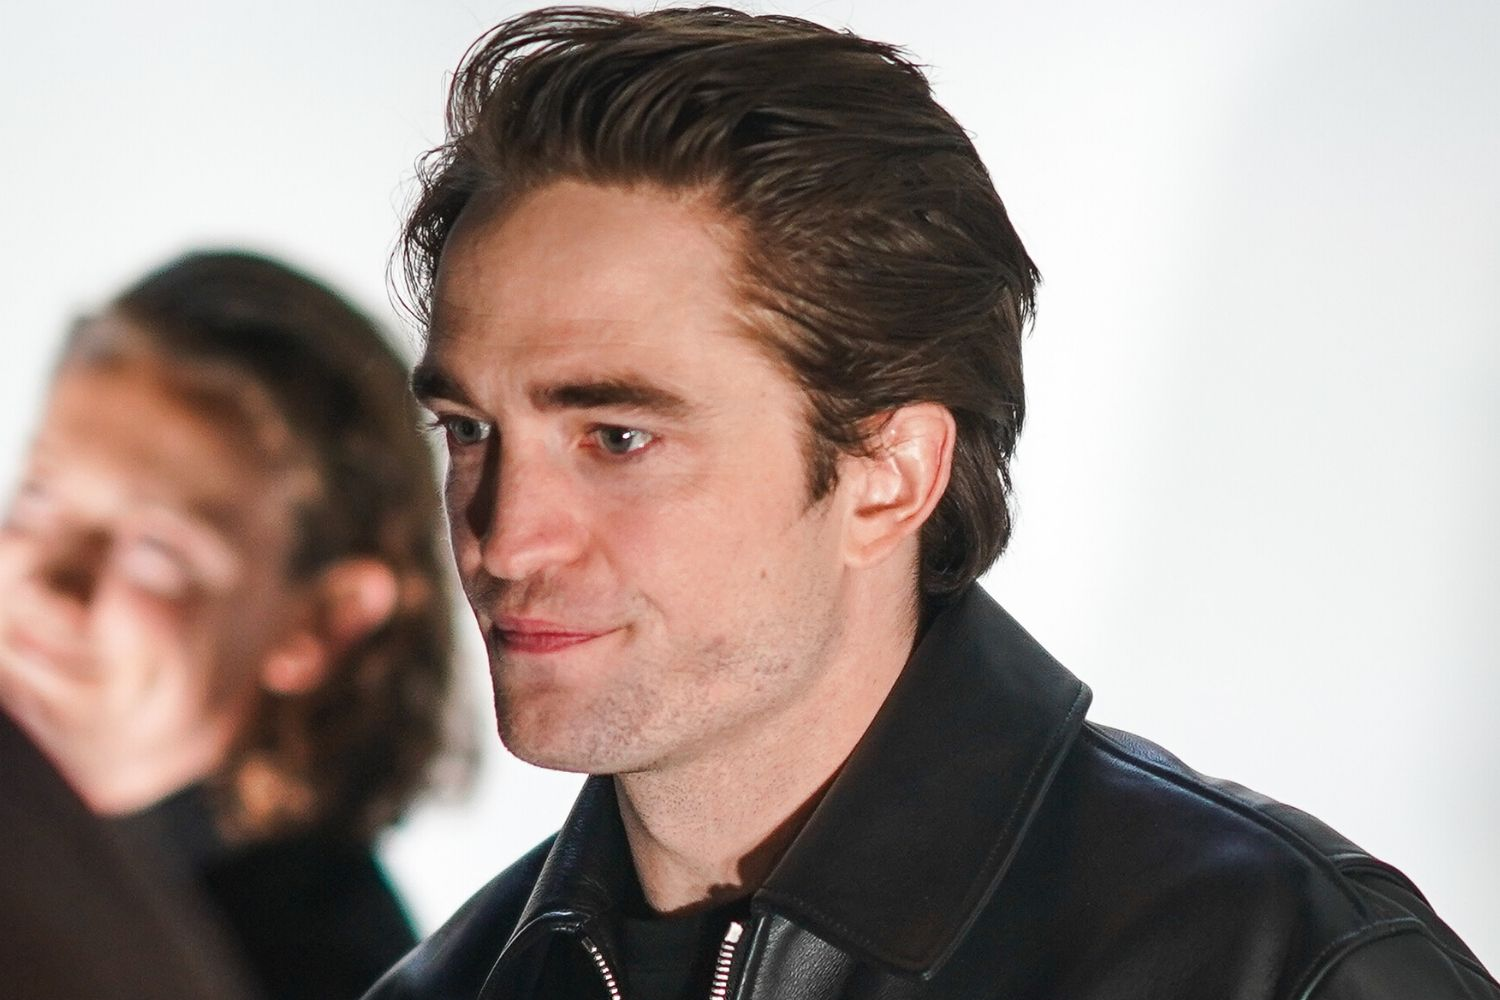 Robert Pattinson dishes on the VERY weird thing he smells like